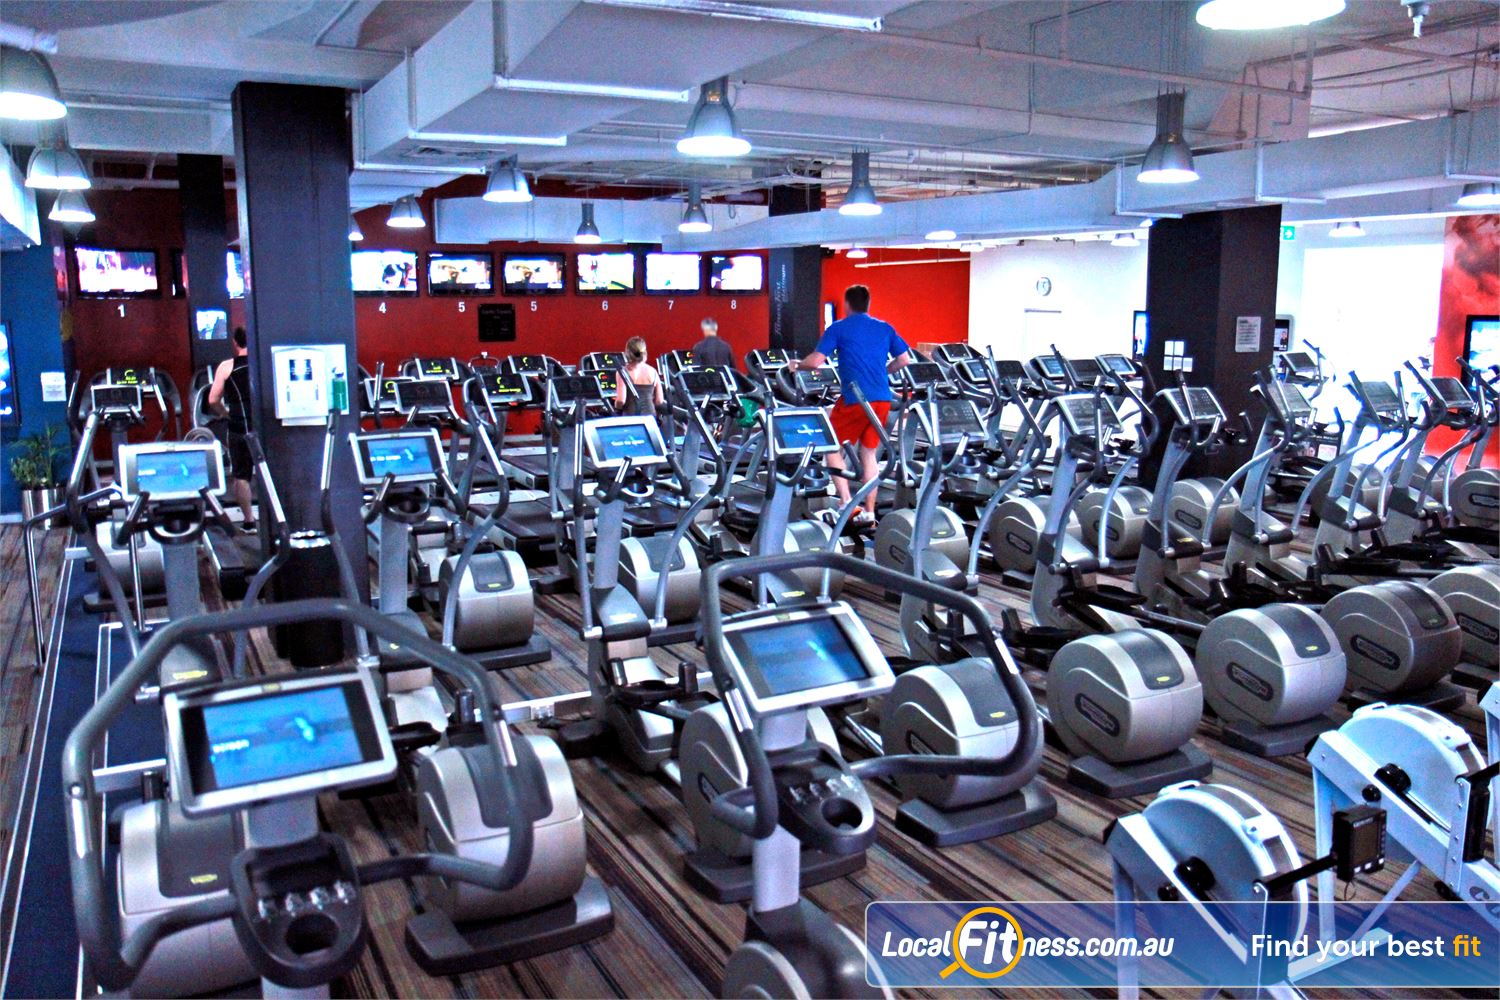 Goodlife Health Clubs Near Jolimont Our Goodlife Subiaco gym includes individual LCD screens on cardio equipment.